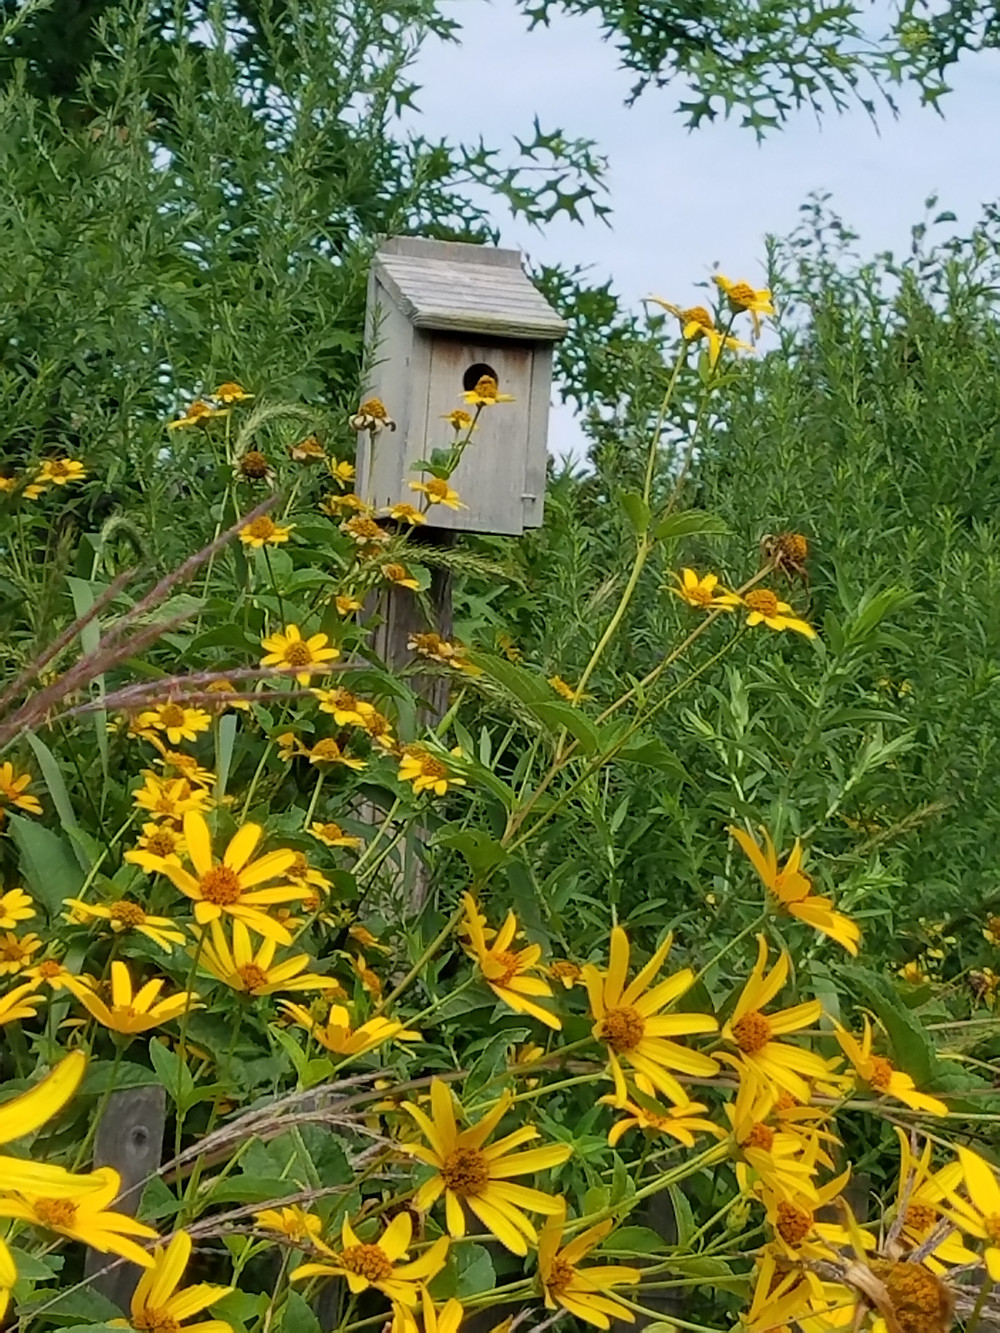 Birdhouses are all over Governors Island